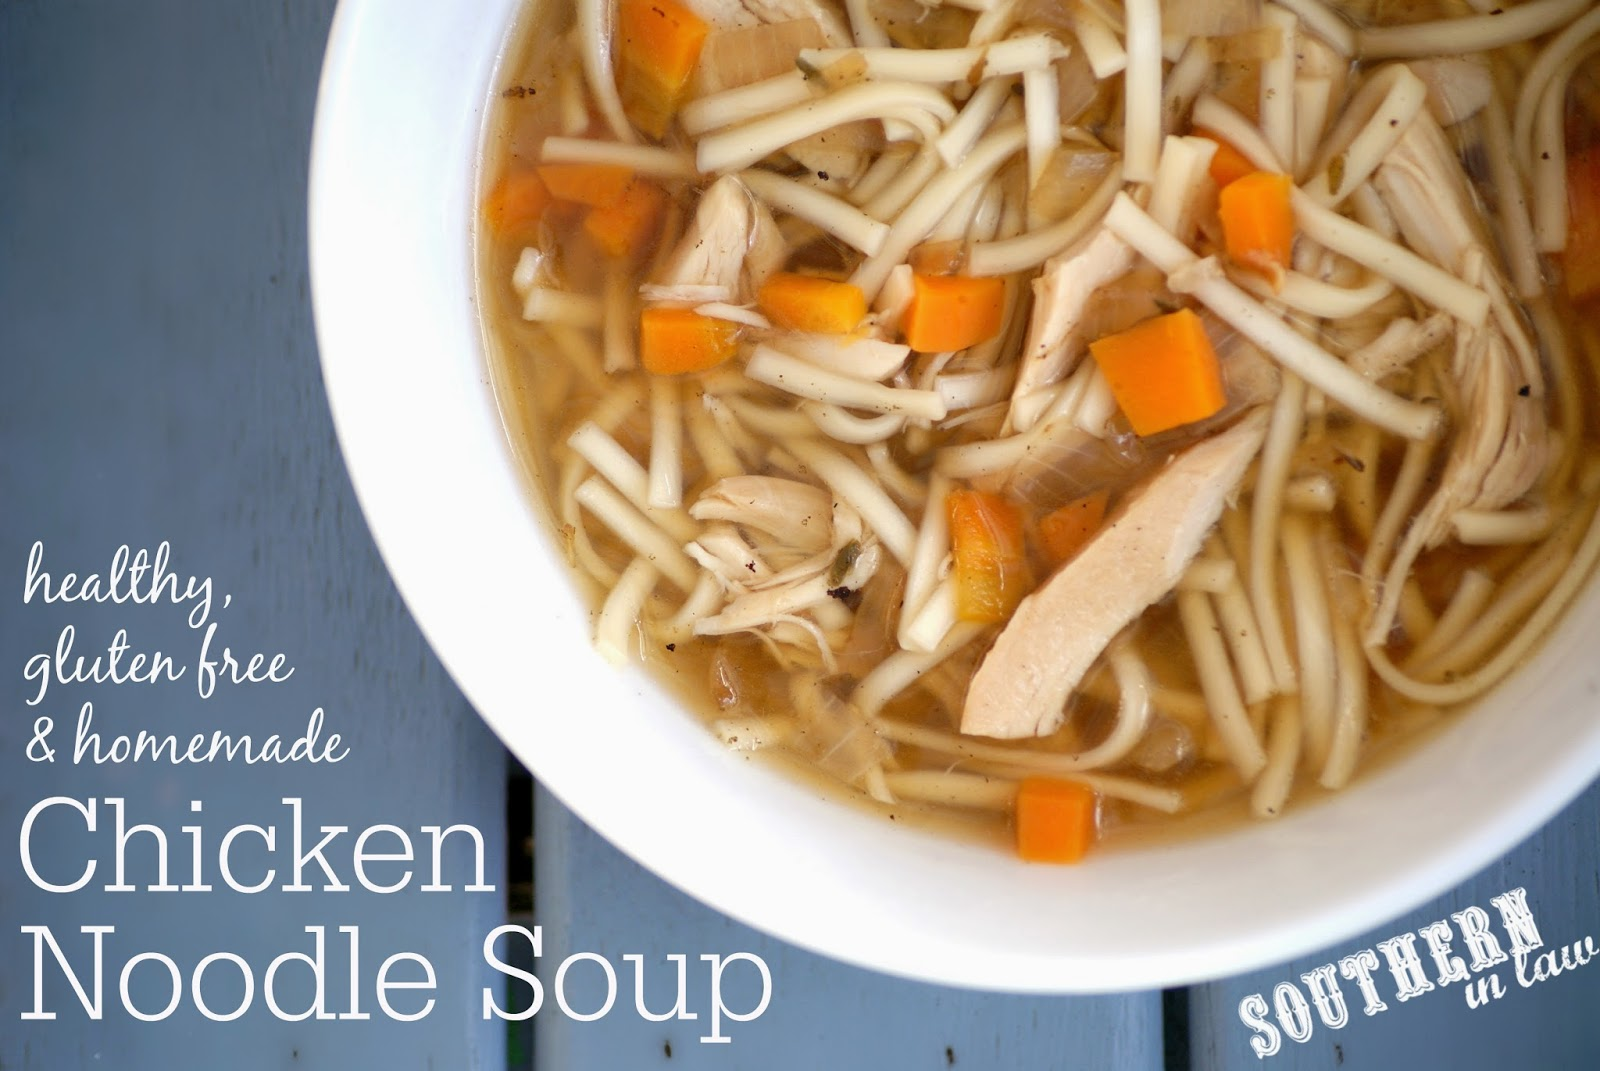 Homemade Healthy Chicken Noodle Soup